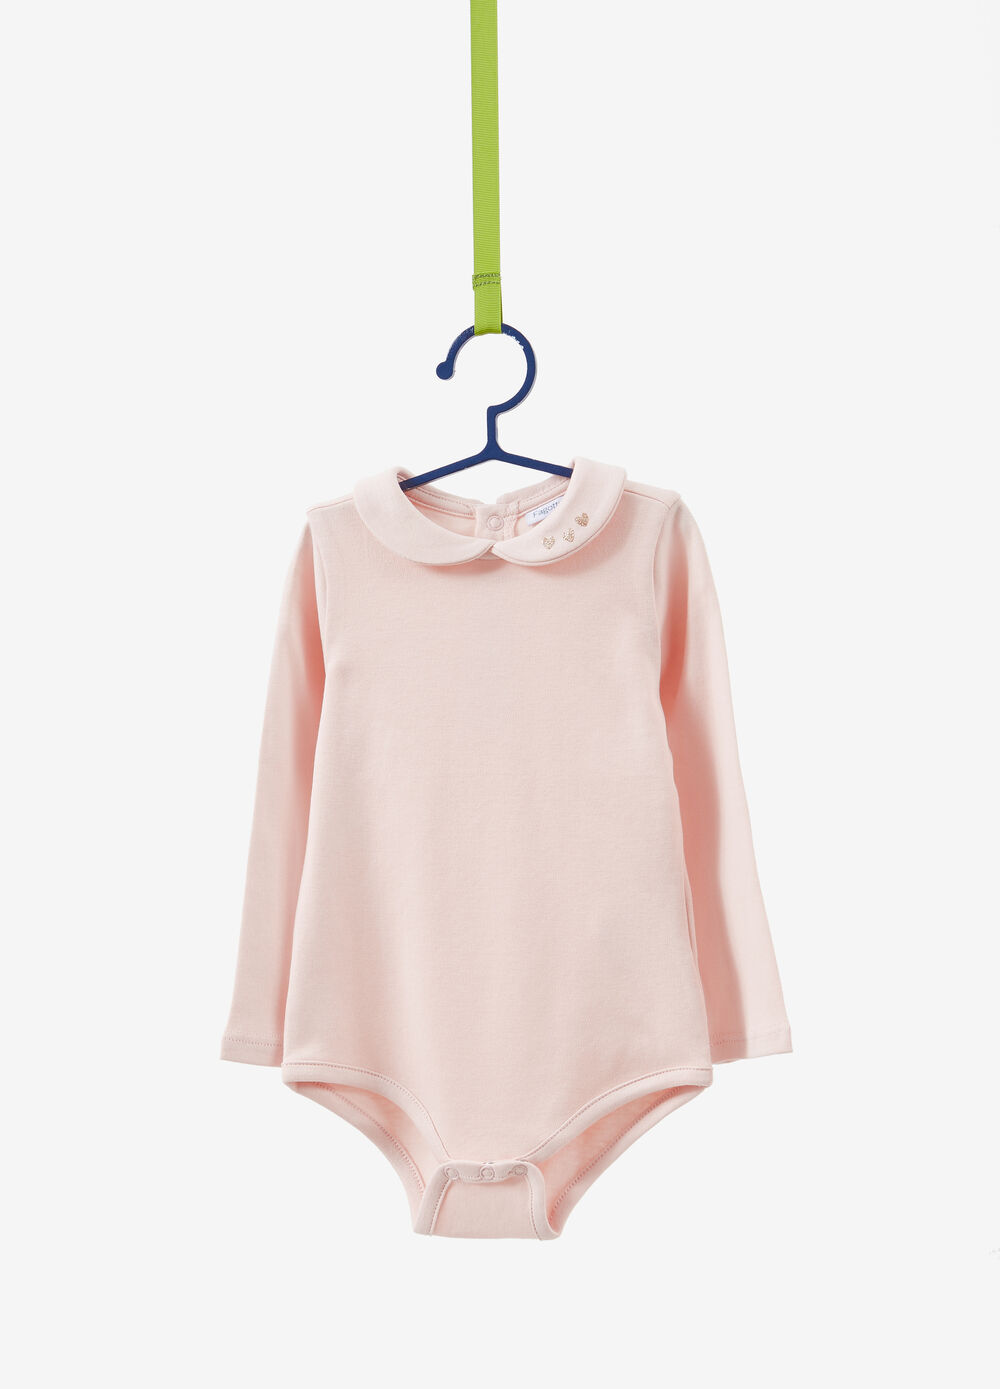 100% cotton bodysuit with long sleeves